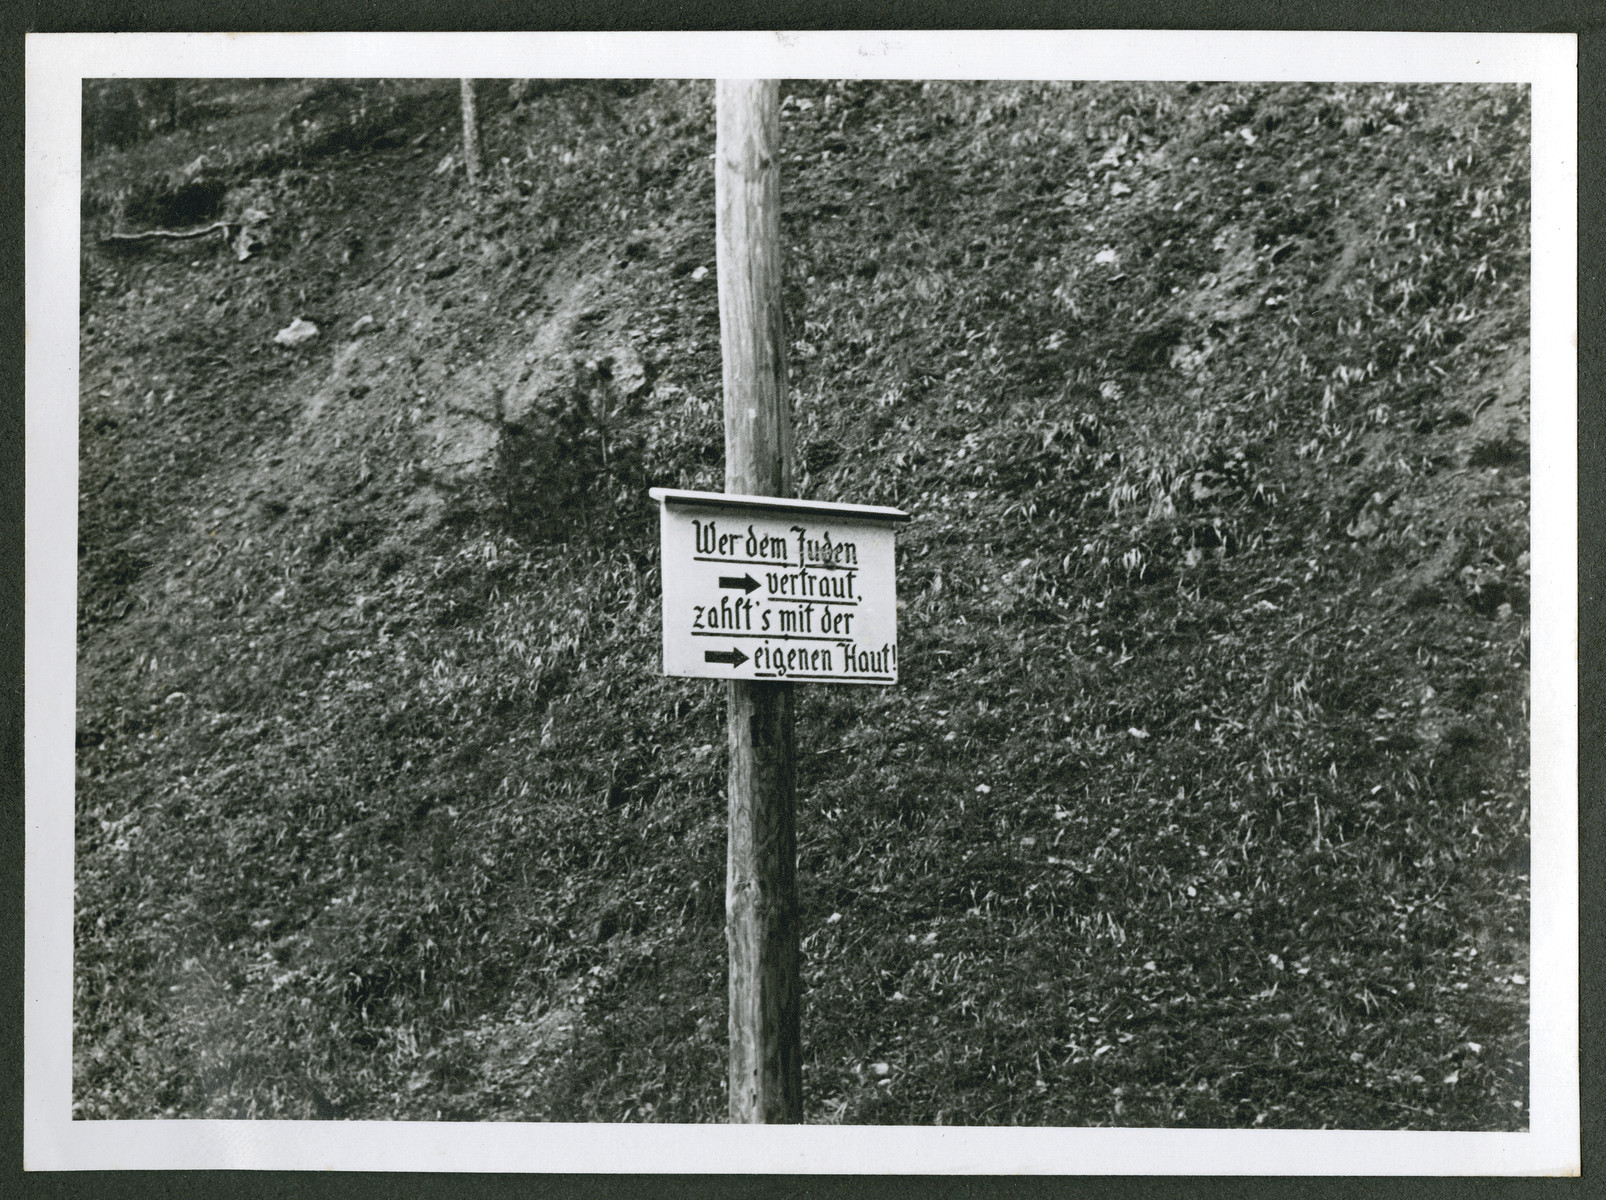 """One photograph from an album of antisemitic signs in Germany.  The sign reads (in German), """"Wer dem Juden vertraut zahlt's mit der eigenen Haut.""""  [He who trusts the Jew pays with his own skin.]"""